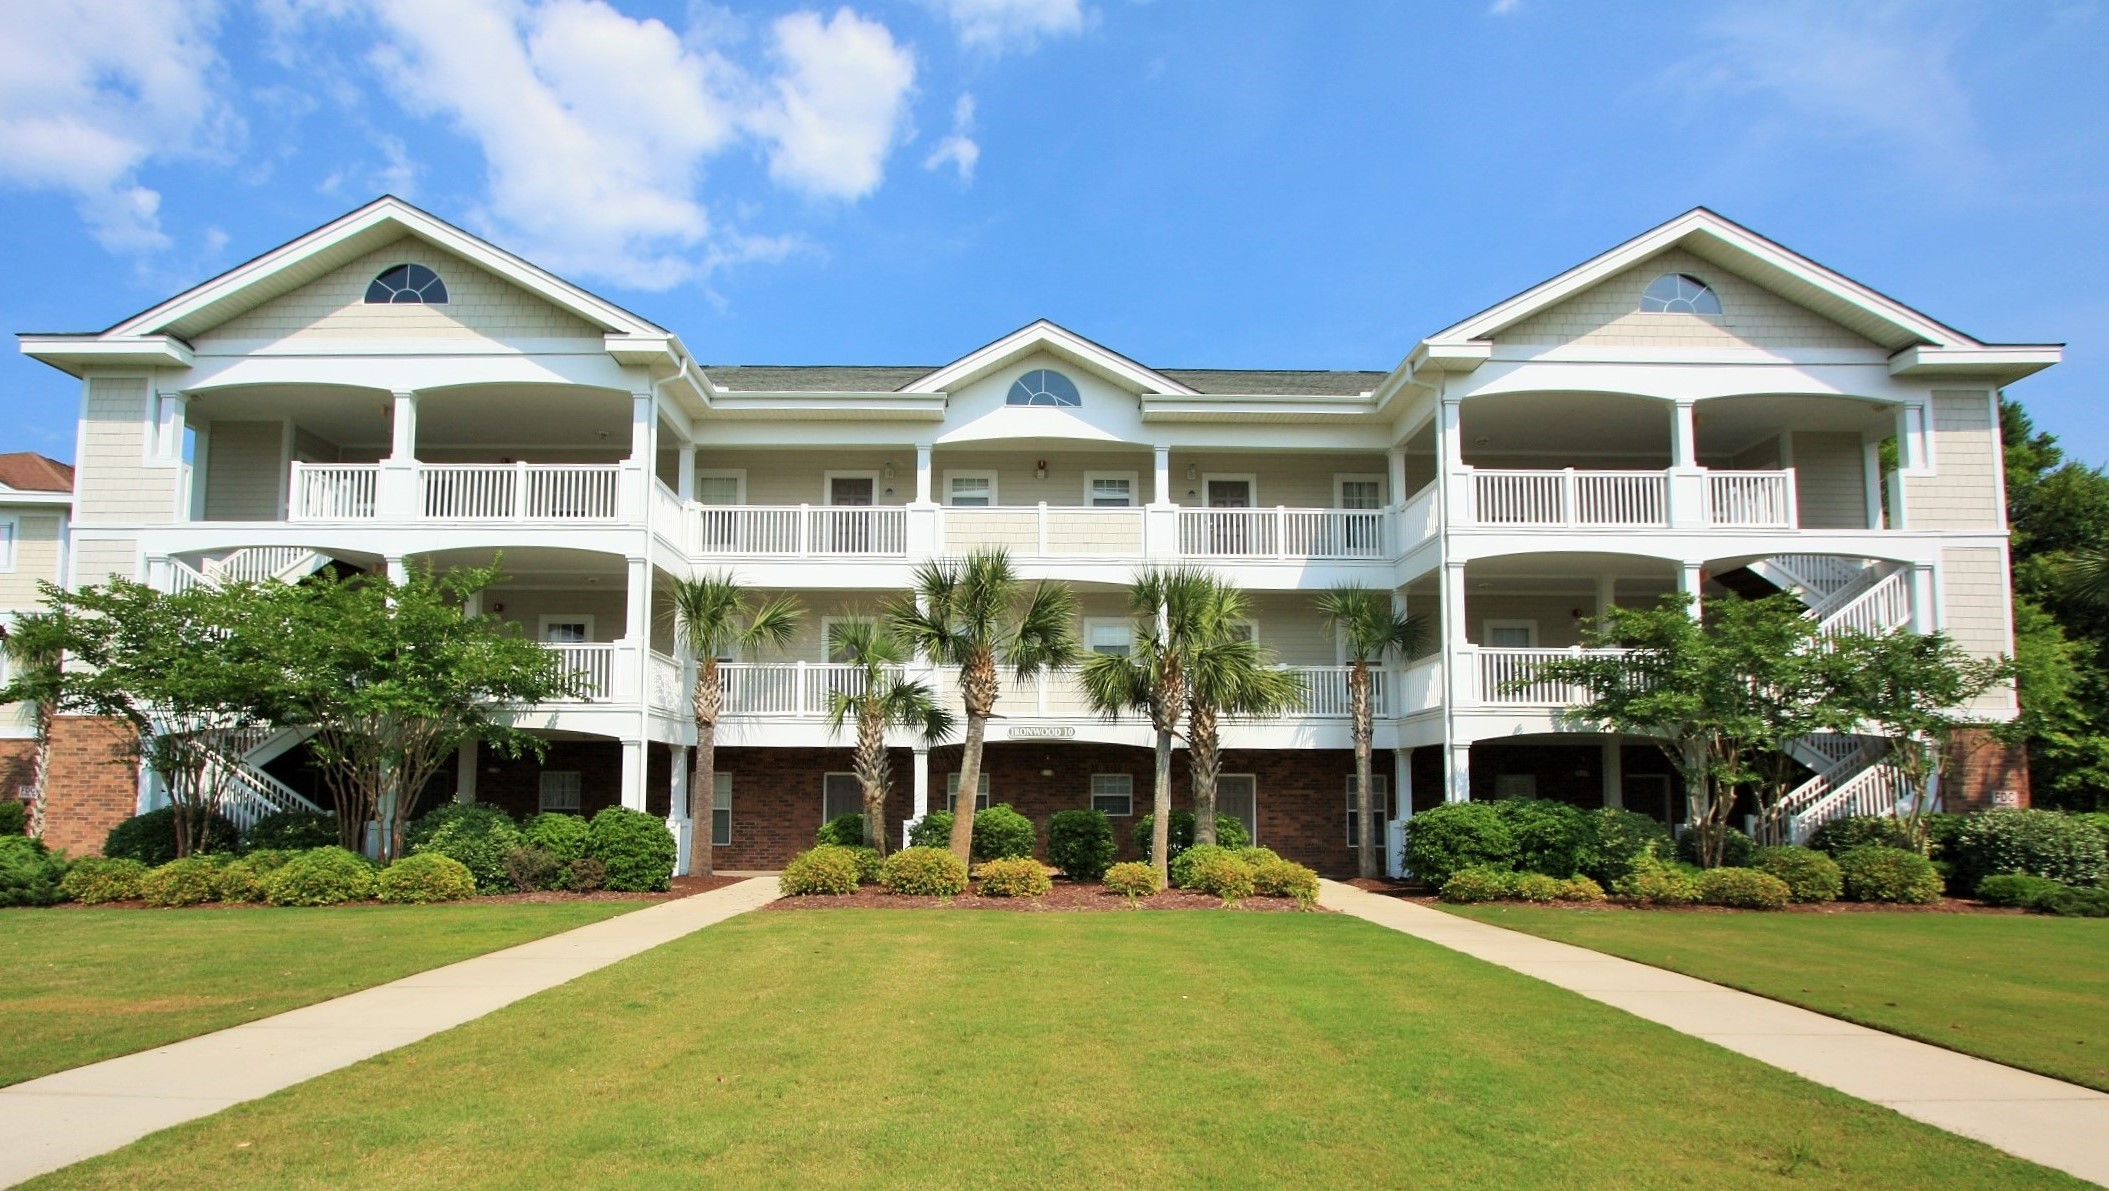 Barefoot Condos For Sale - Barefoot Resort